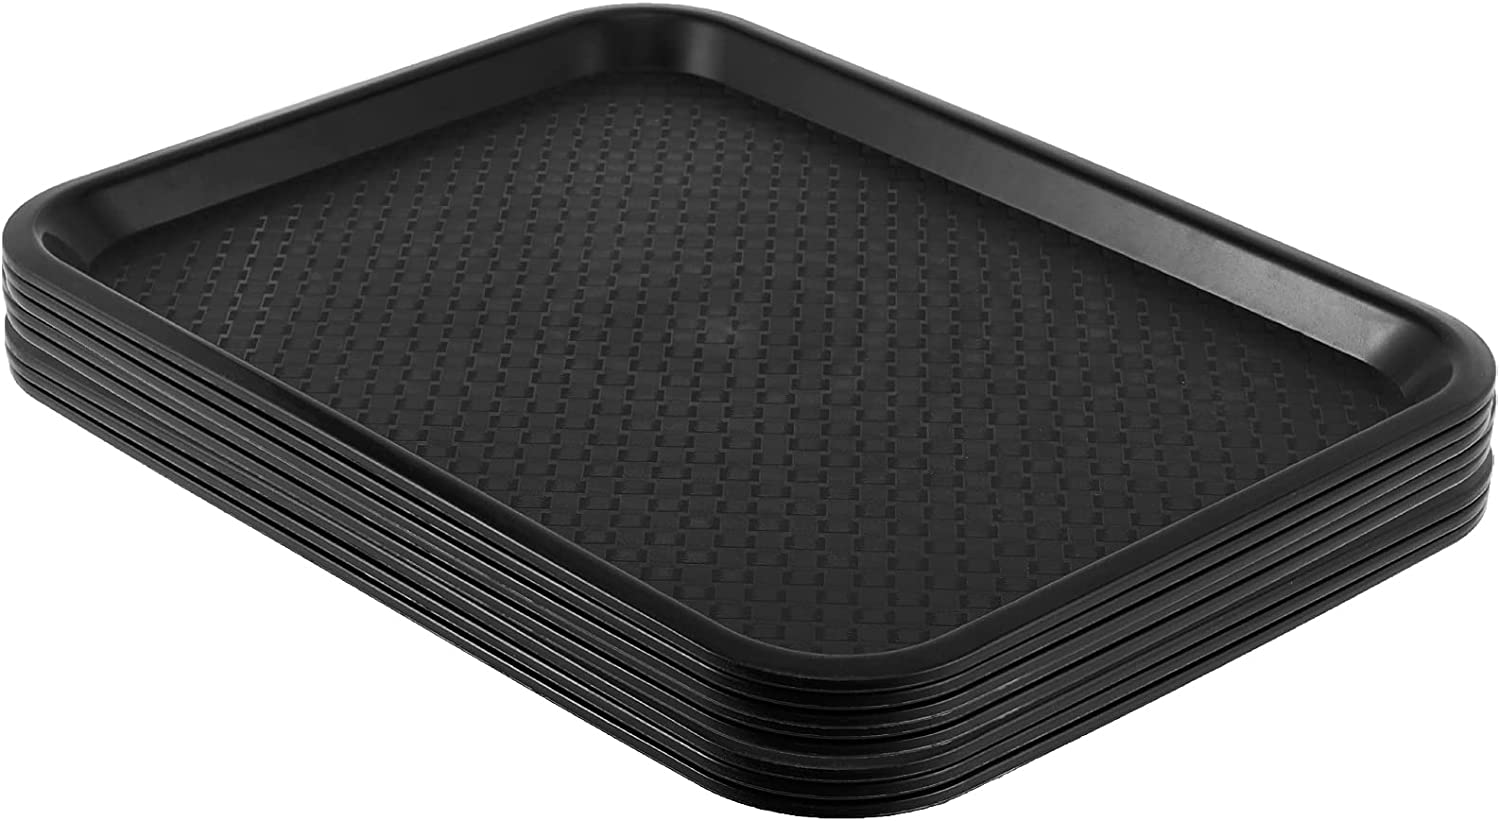 SHEUTSAN 8 Packs 12 x 16 Inches Plastic Fast Food Trays, Non-Slip Rectangular Restaurant Cafeteria Serving Trays, Sturdy Black Storage Trays Food Service Trays, for Household and Business Use